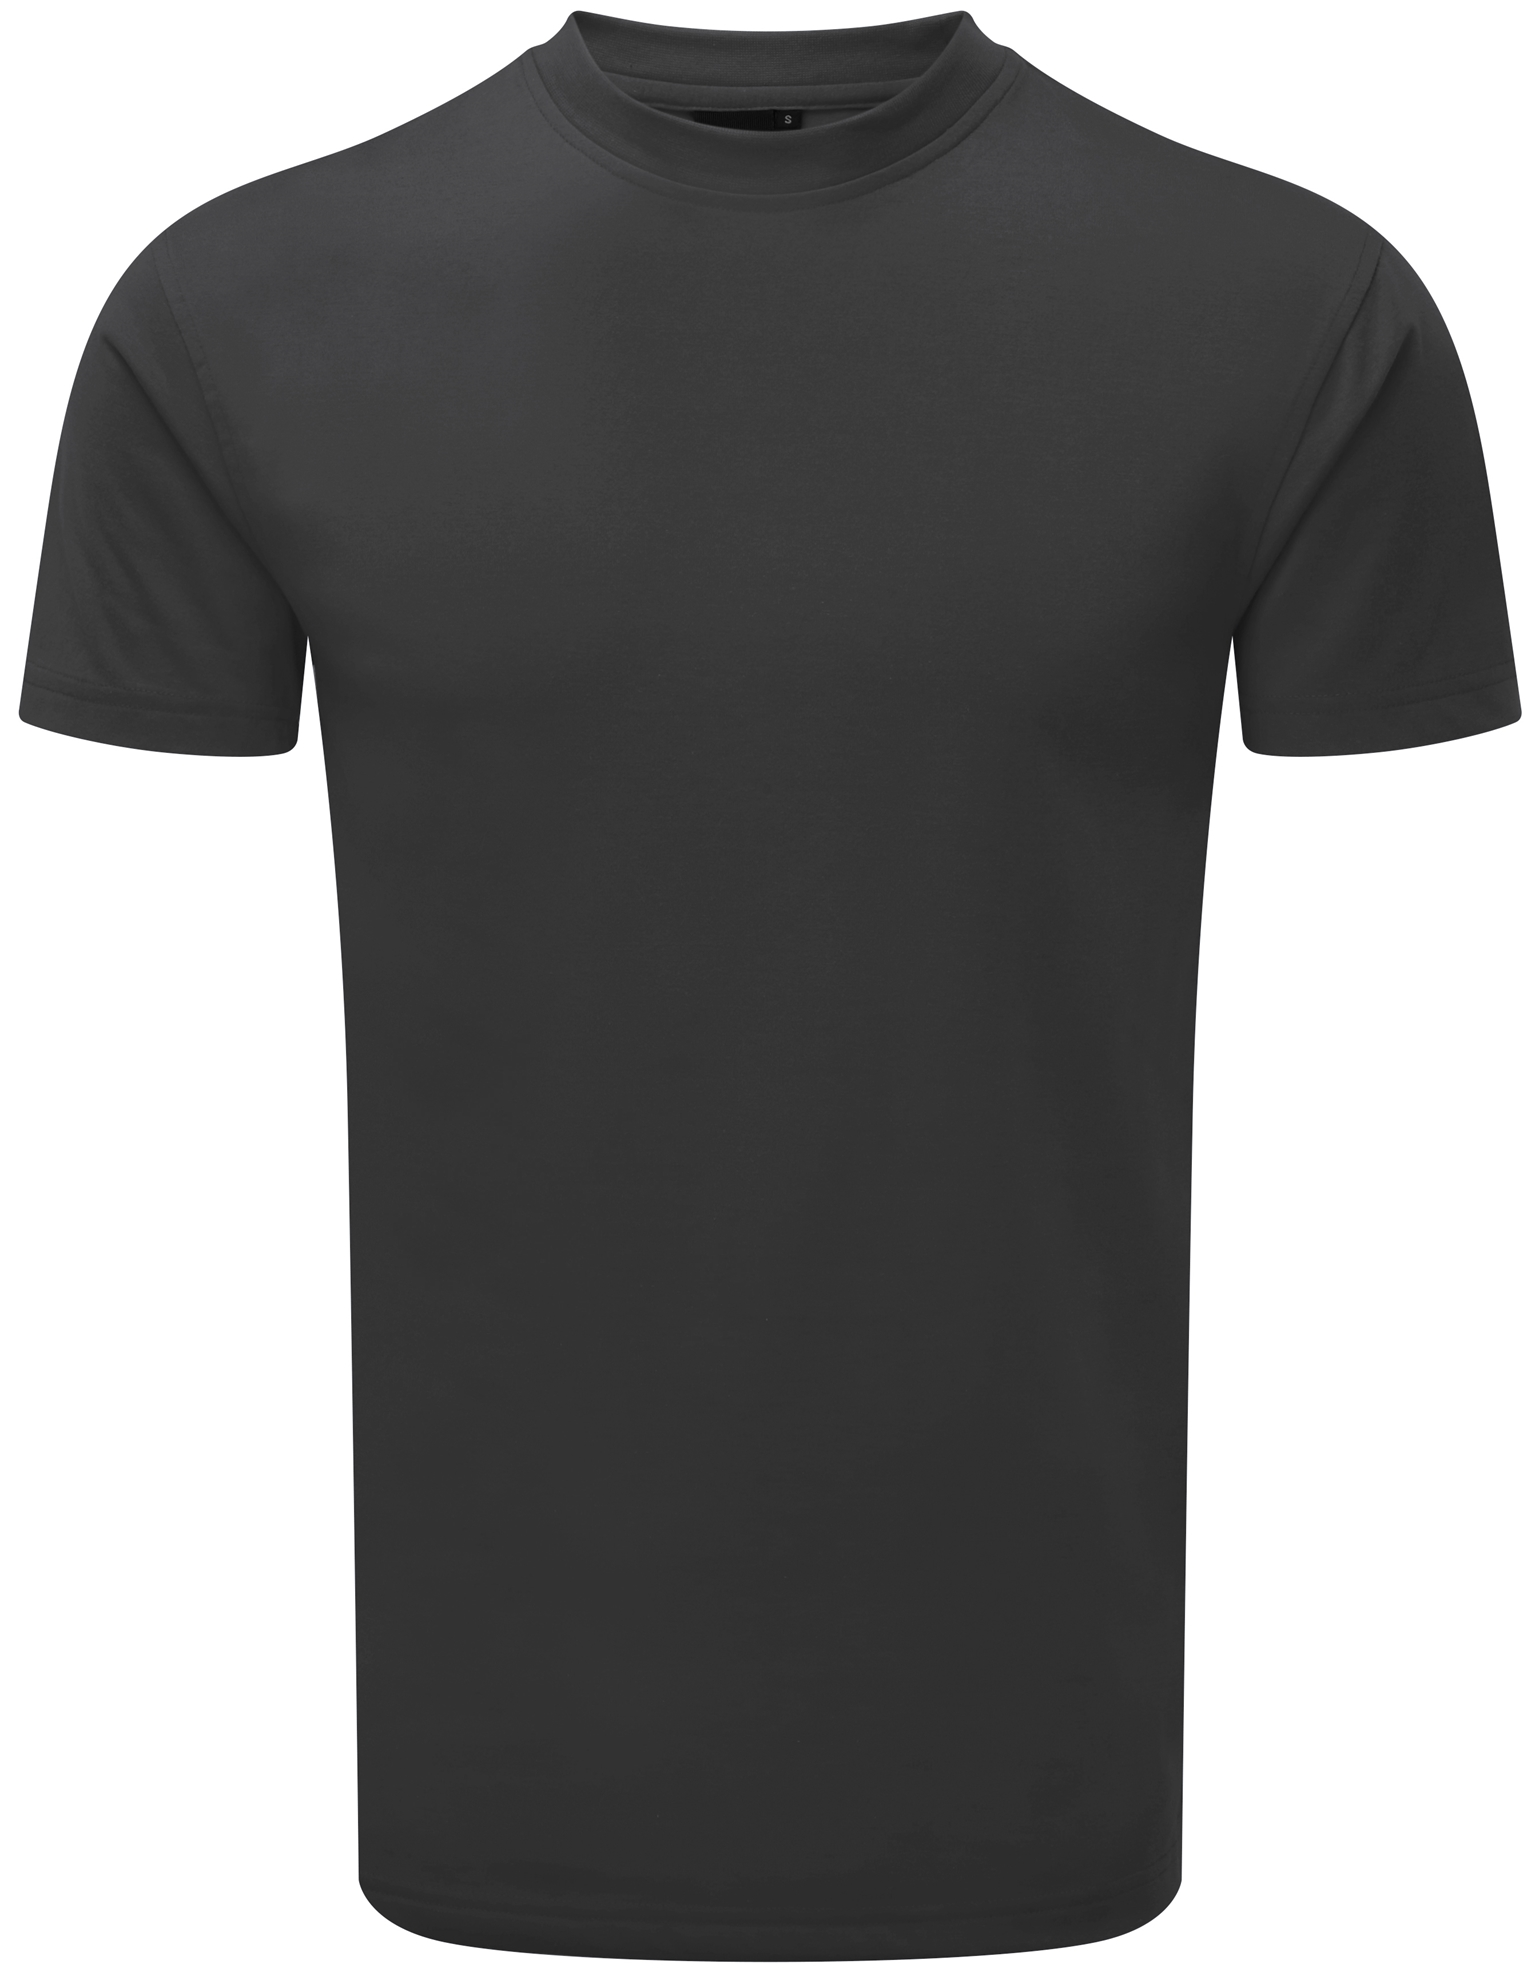 Picture of Gryzko Heavy Weight T-Shirt - Black